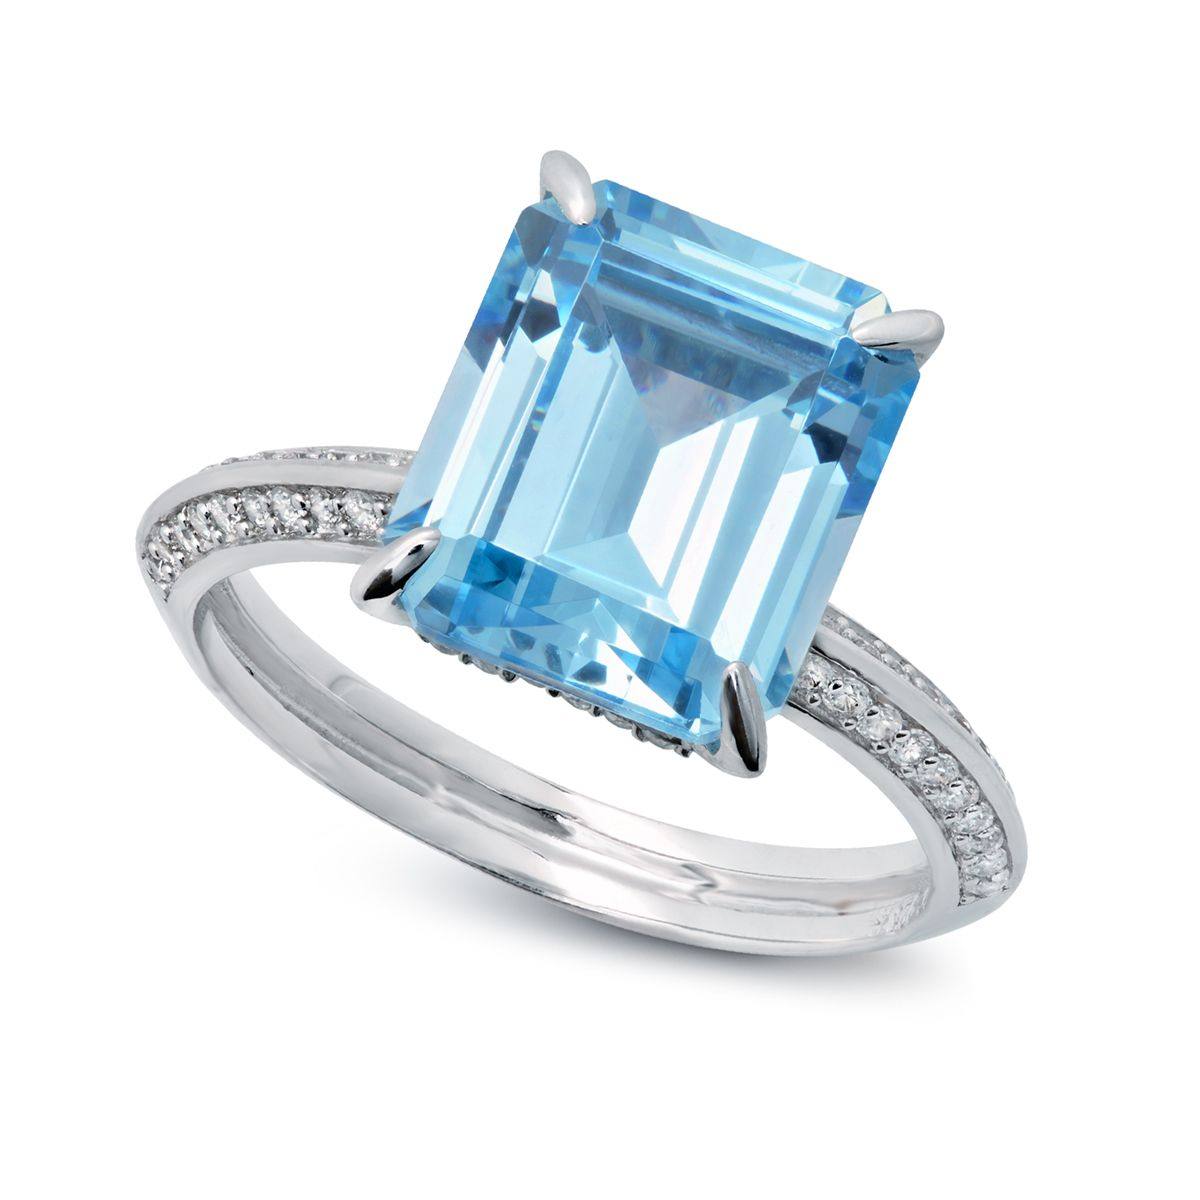 CRISLU Aquamarine Colored CZ Ring